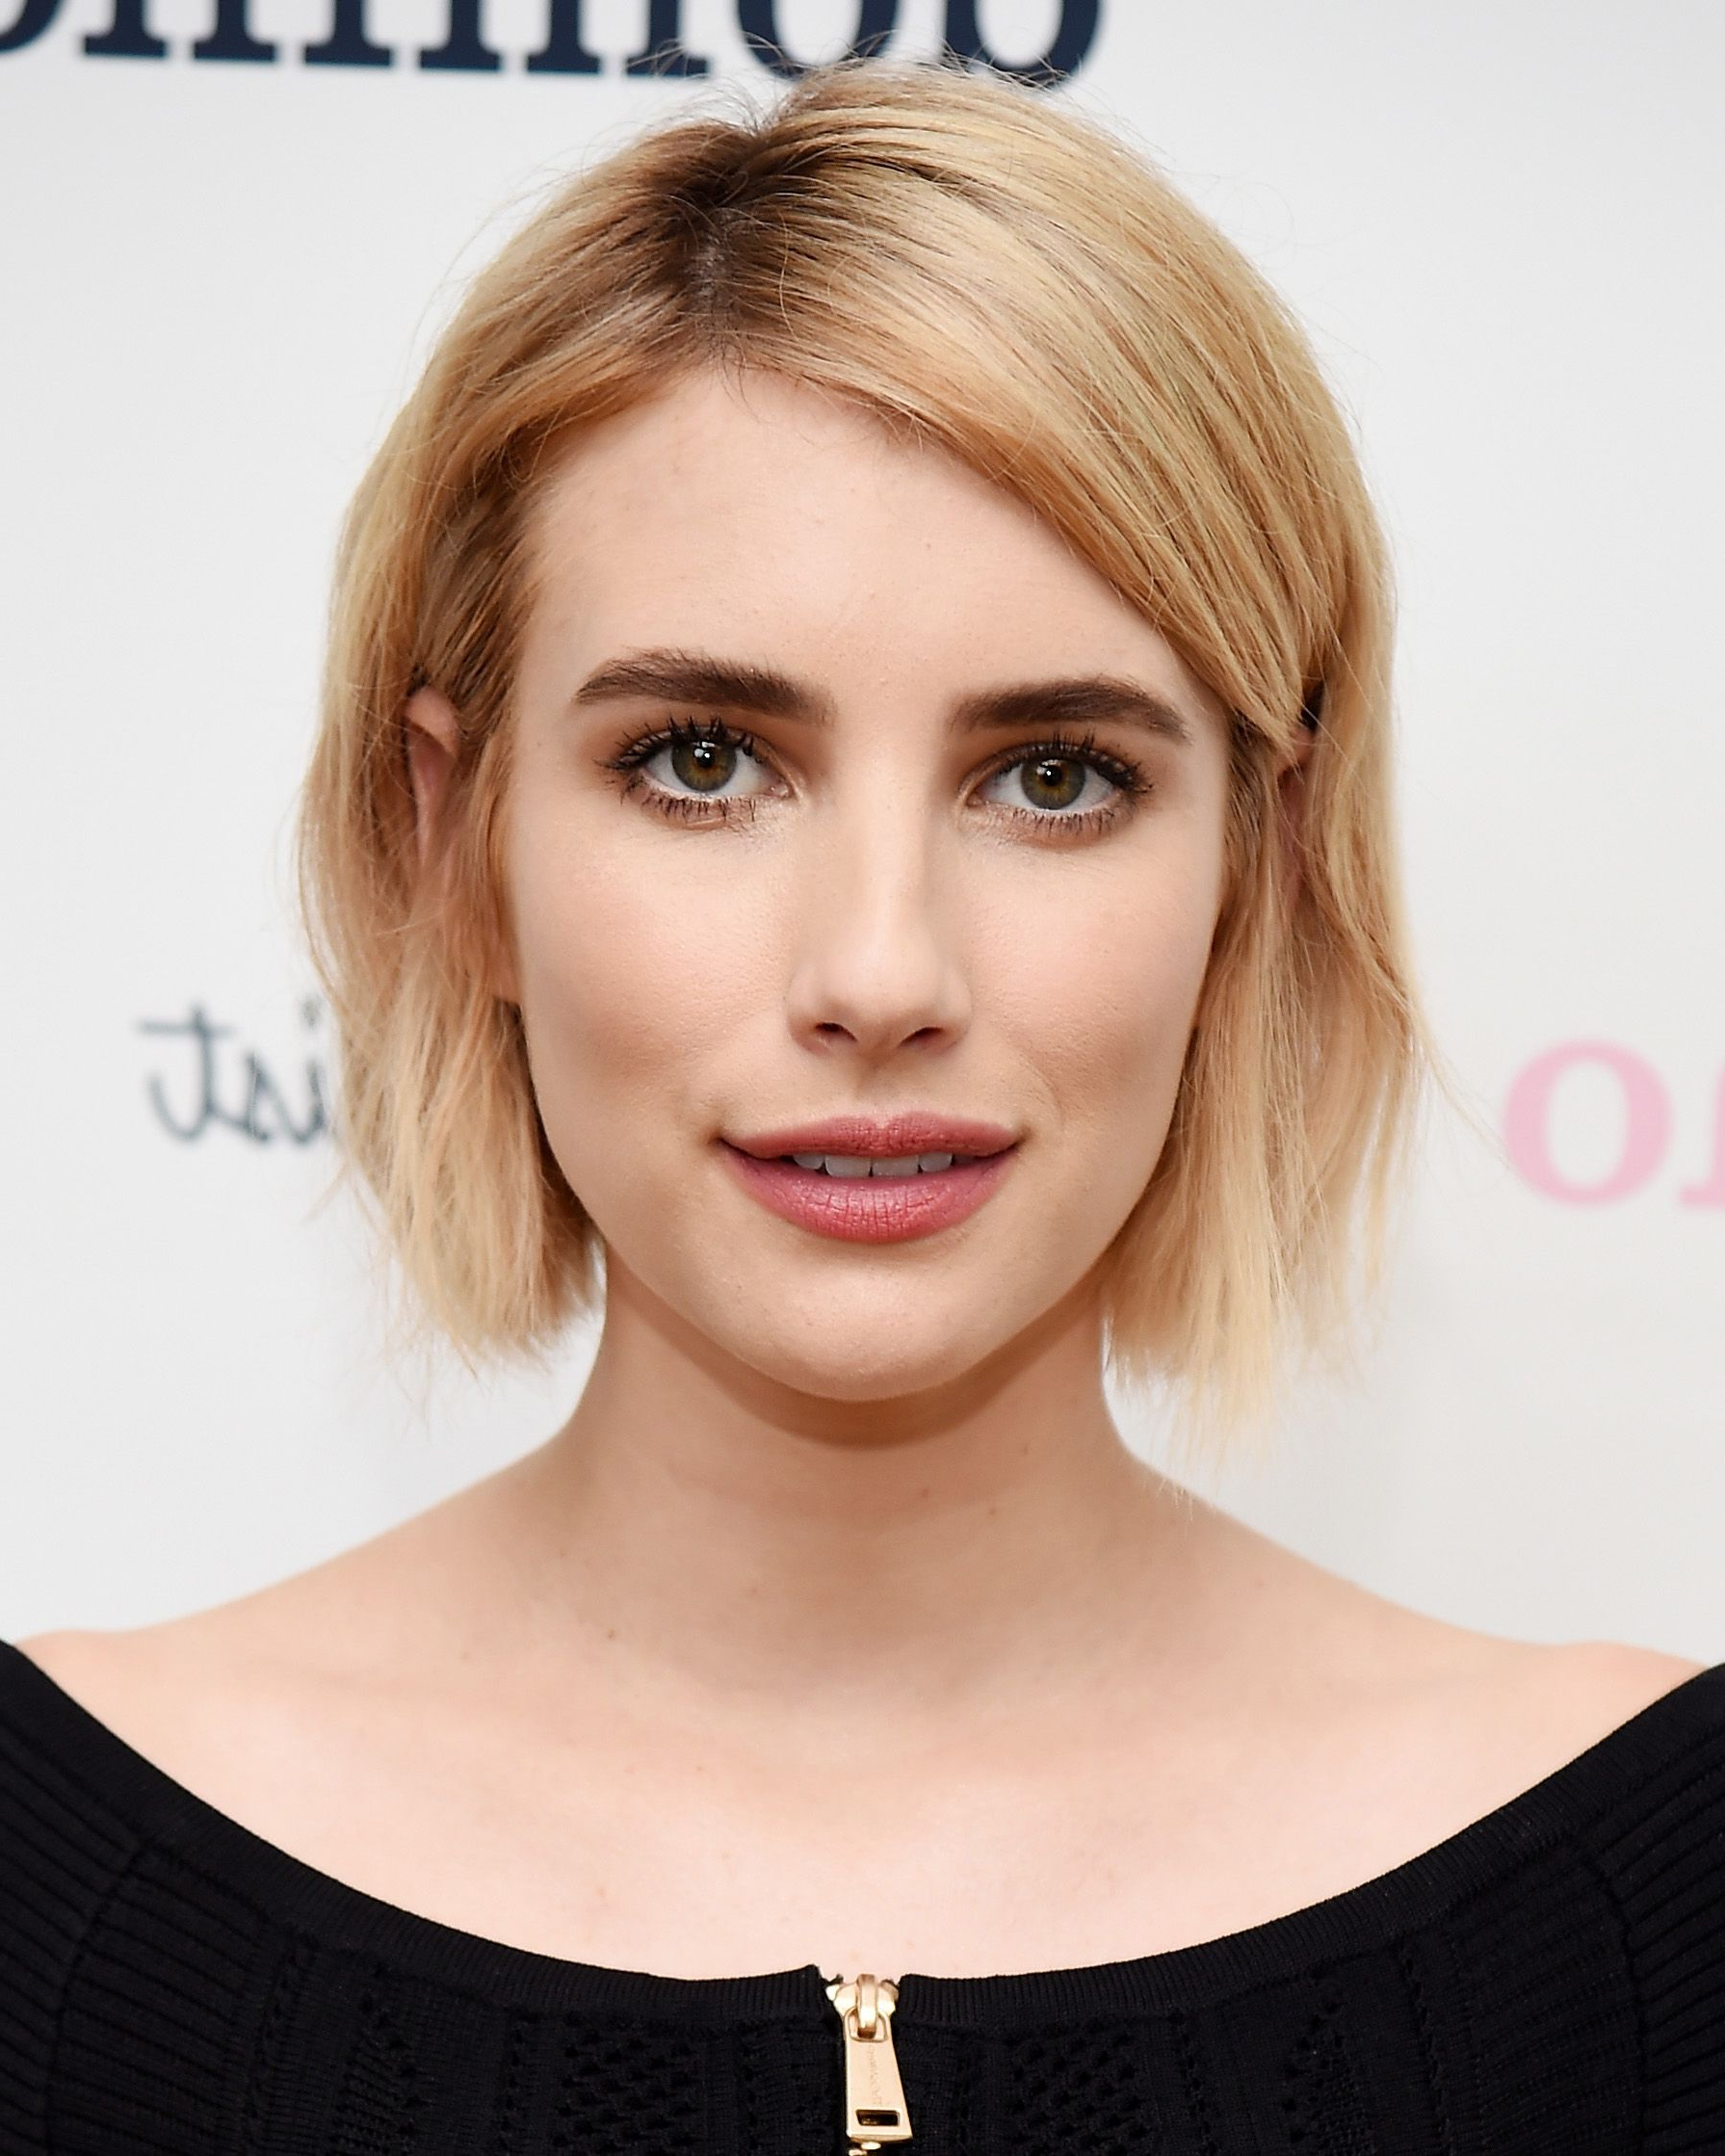 45 Bob Hairstyles For 2019 – Bob Haircuts To Copy This Year In Classy Bob Haircuts With Bangs (View 14 of 20)